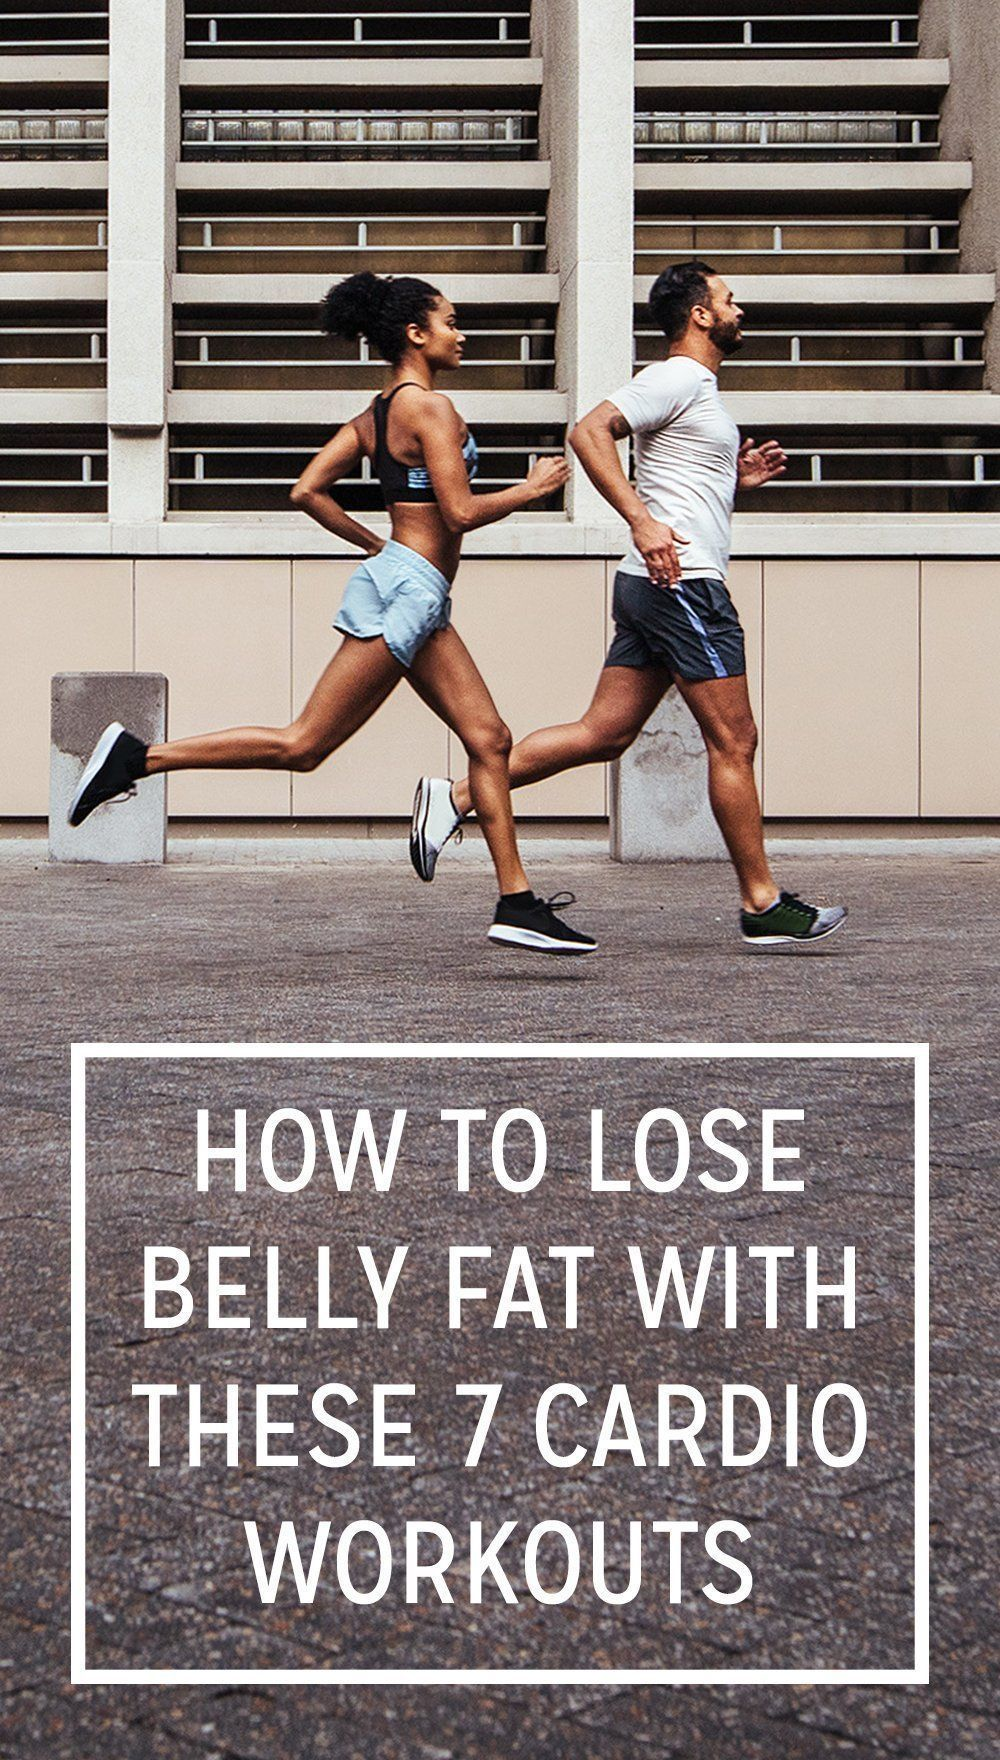 Fast weight loss tips for summer #fatlosstips    how can i lose weight fast at home#weightlossjourne...